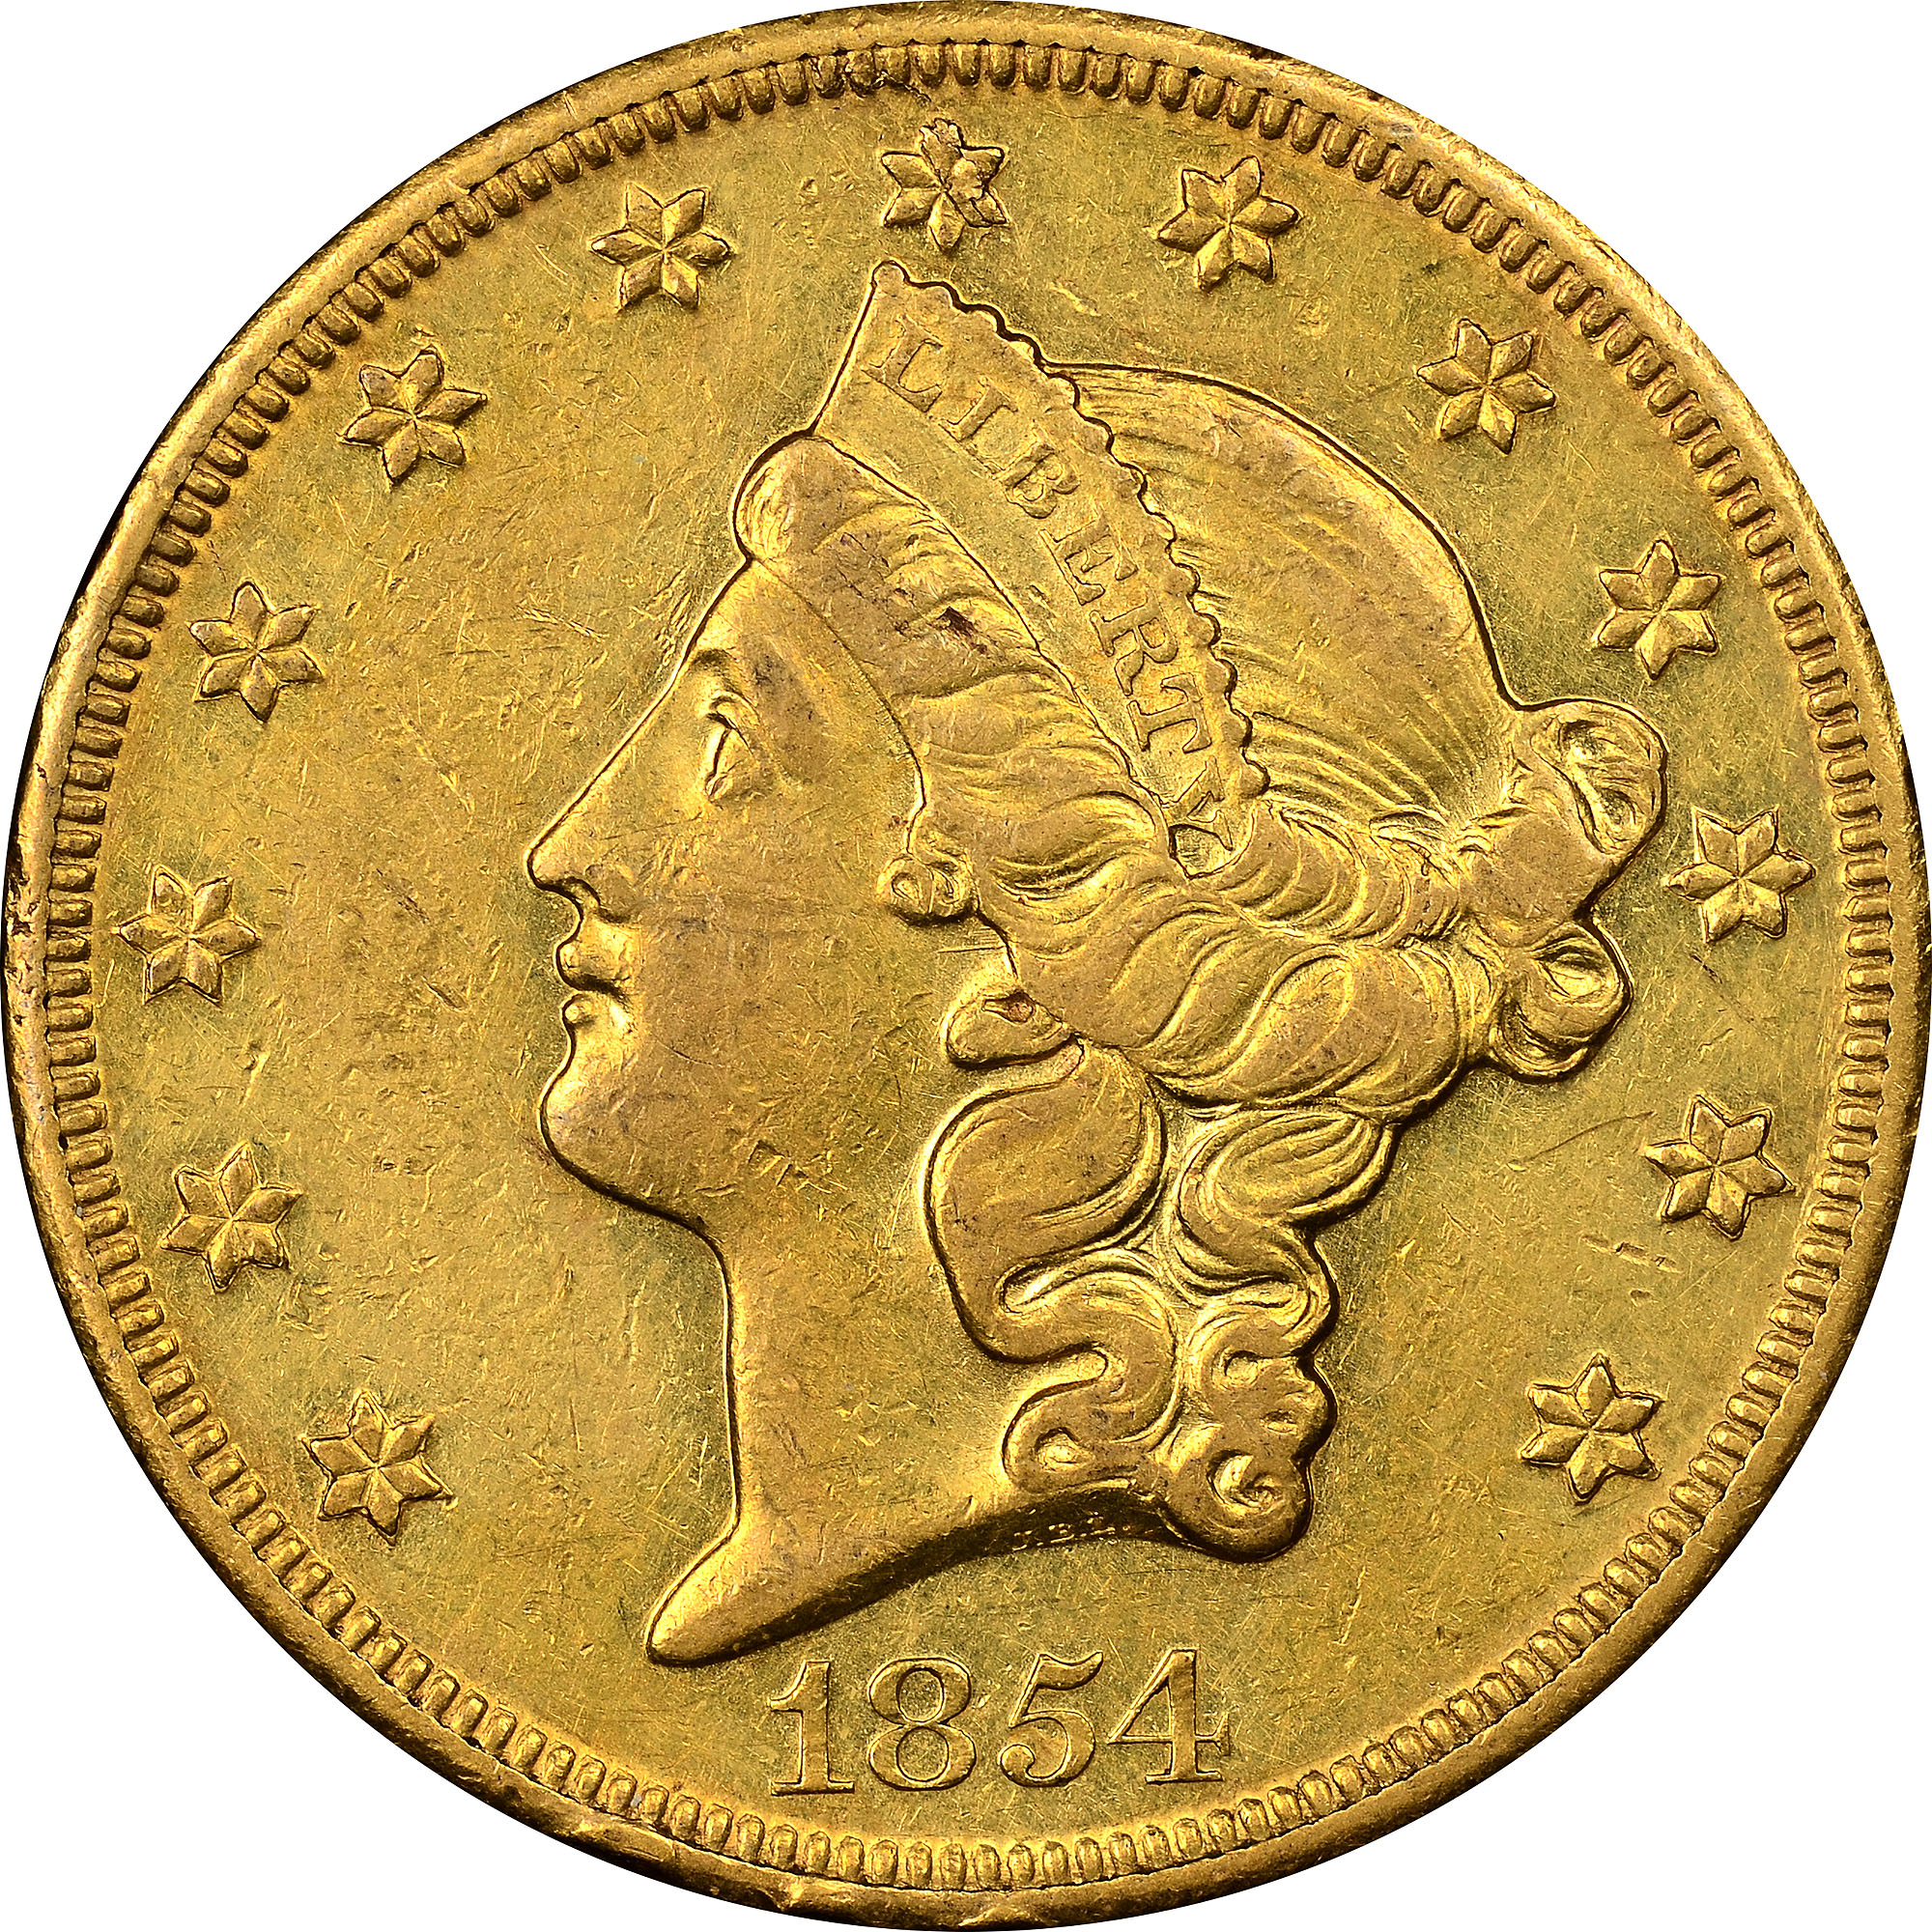 Liberty $20 Gold Coin (1839-1908) Value | JM Bullion™